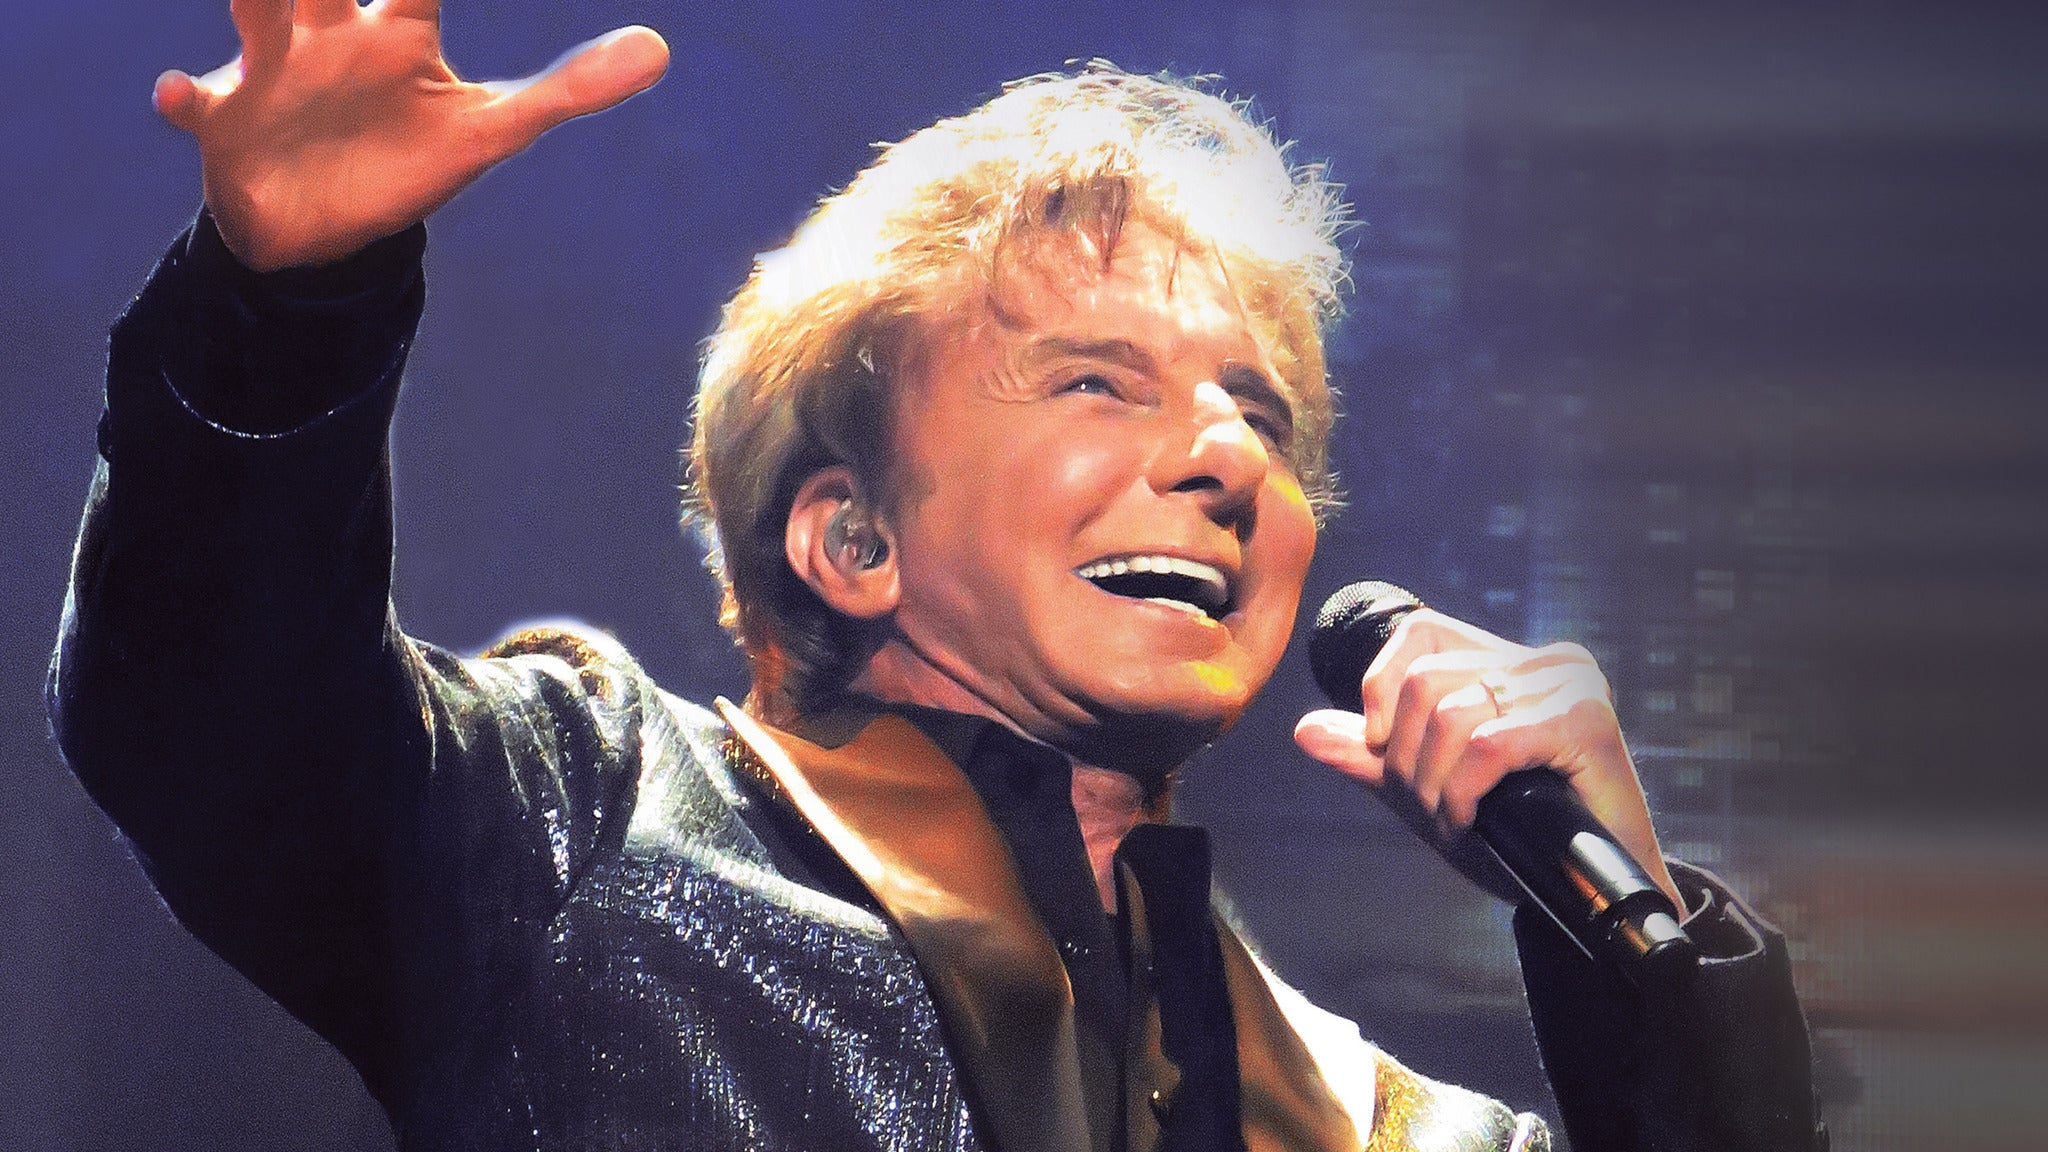 Barry Manilow at Amalie Arena